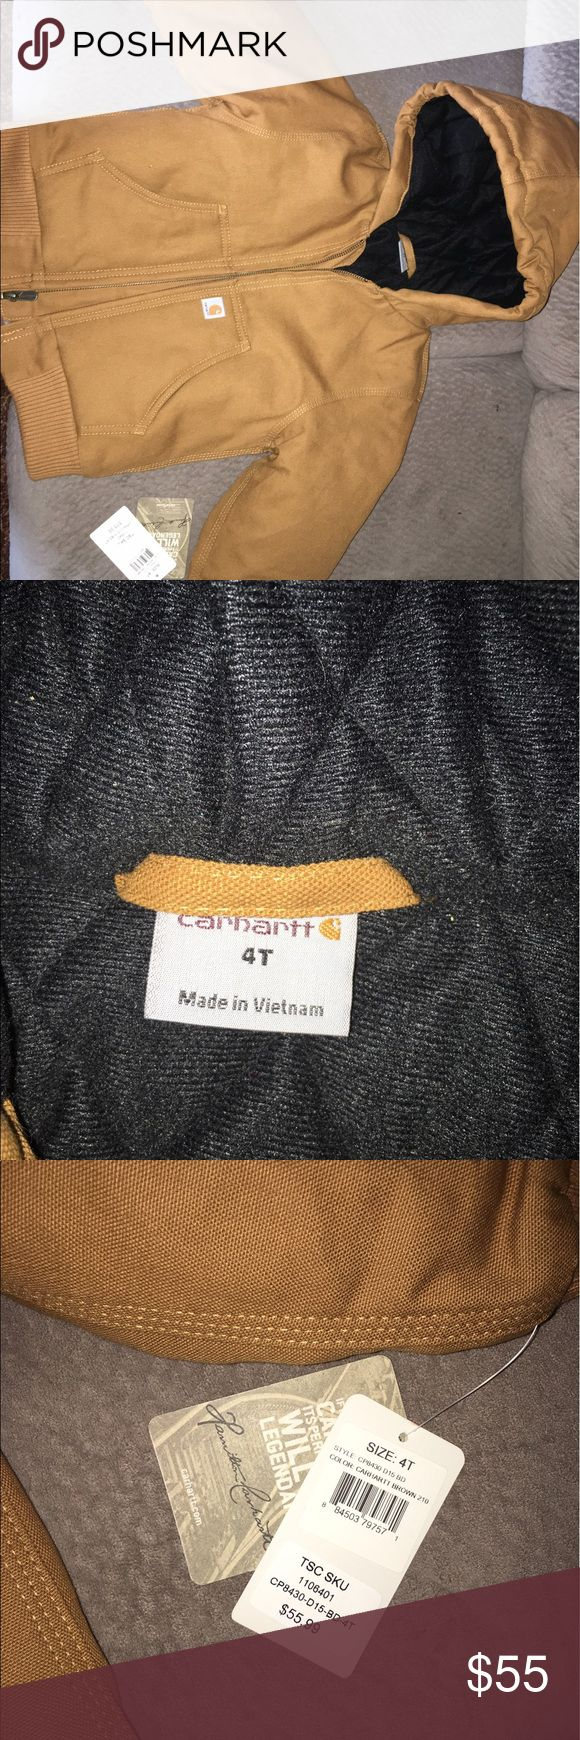 Carhartt coat Brand new with tags! Size 4t Carhartt Jackets & Coats